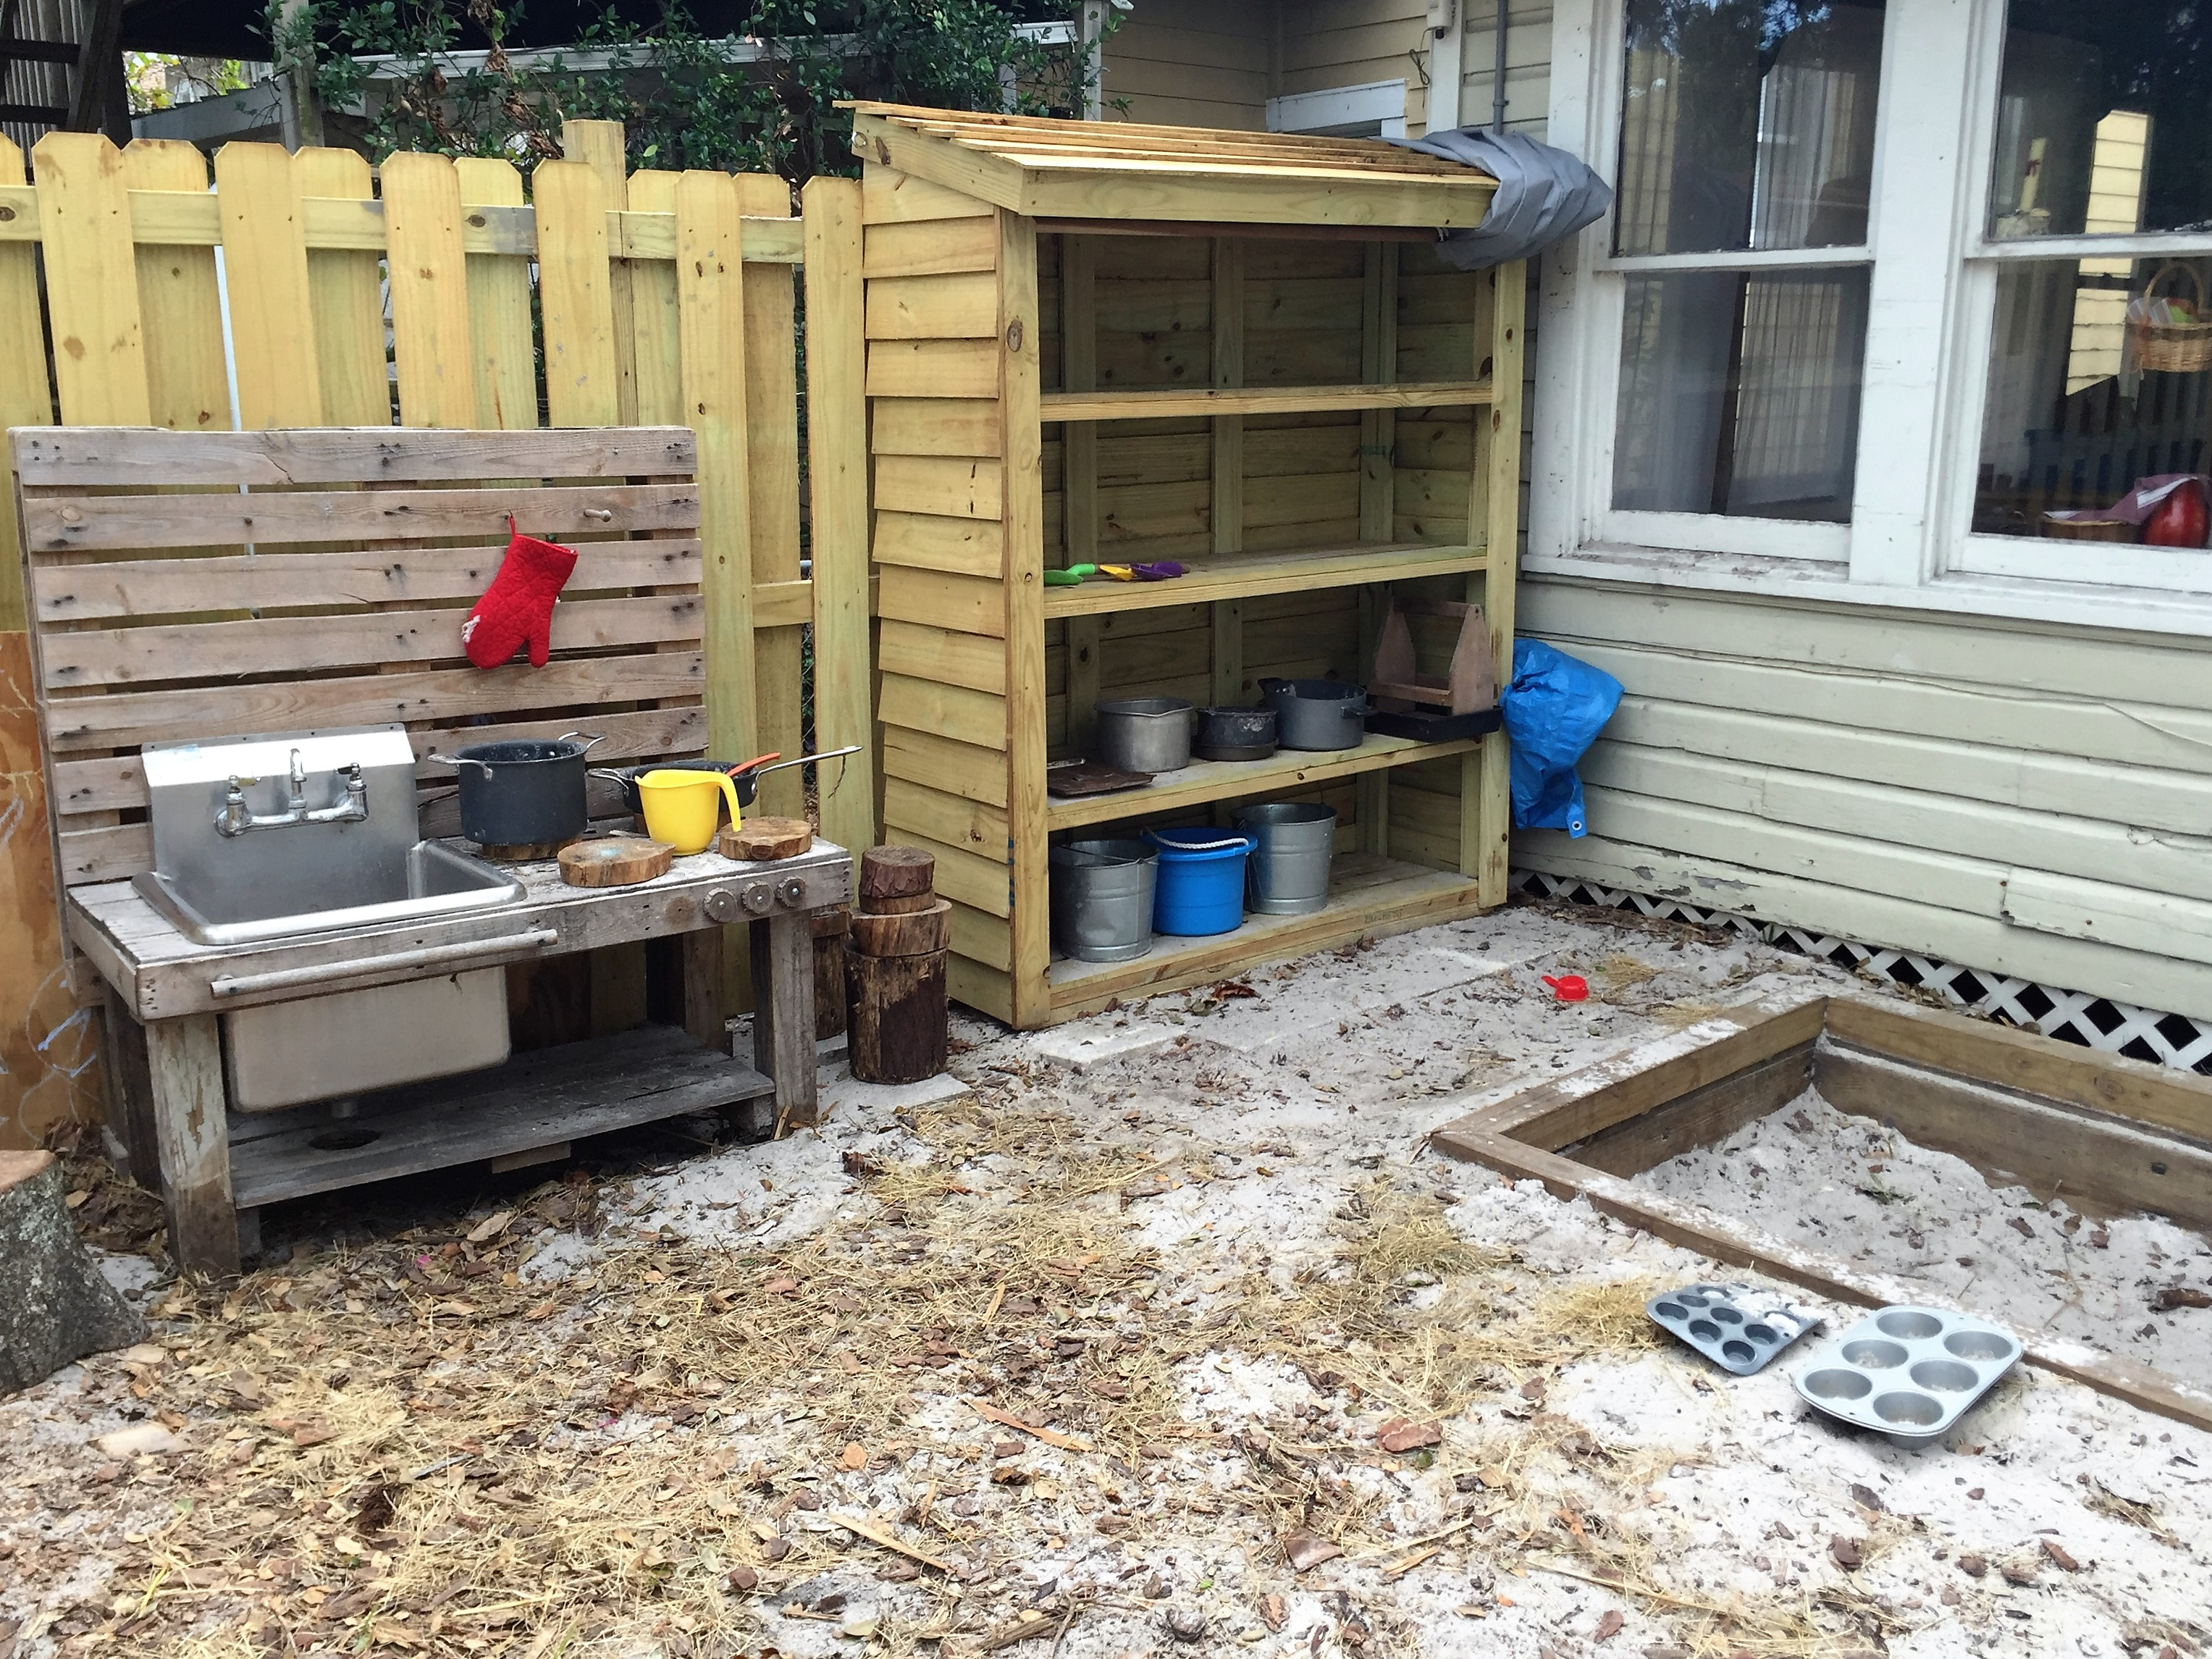 The Playgarden Outdoor Kitchen